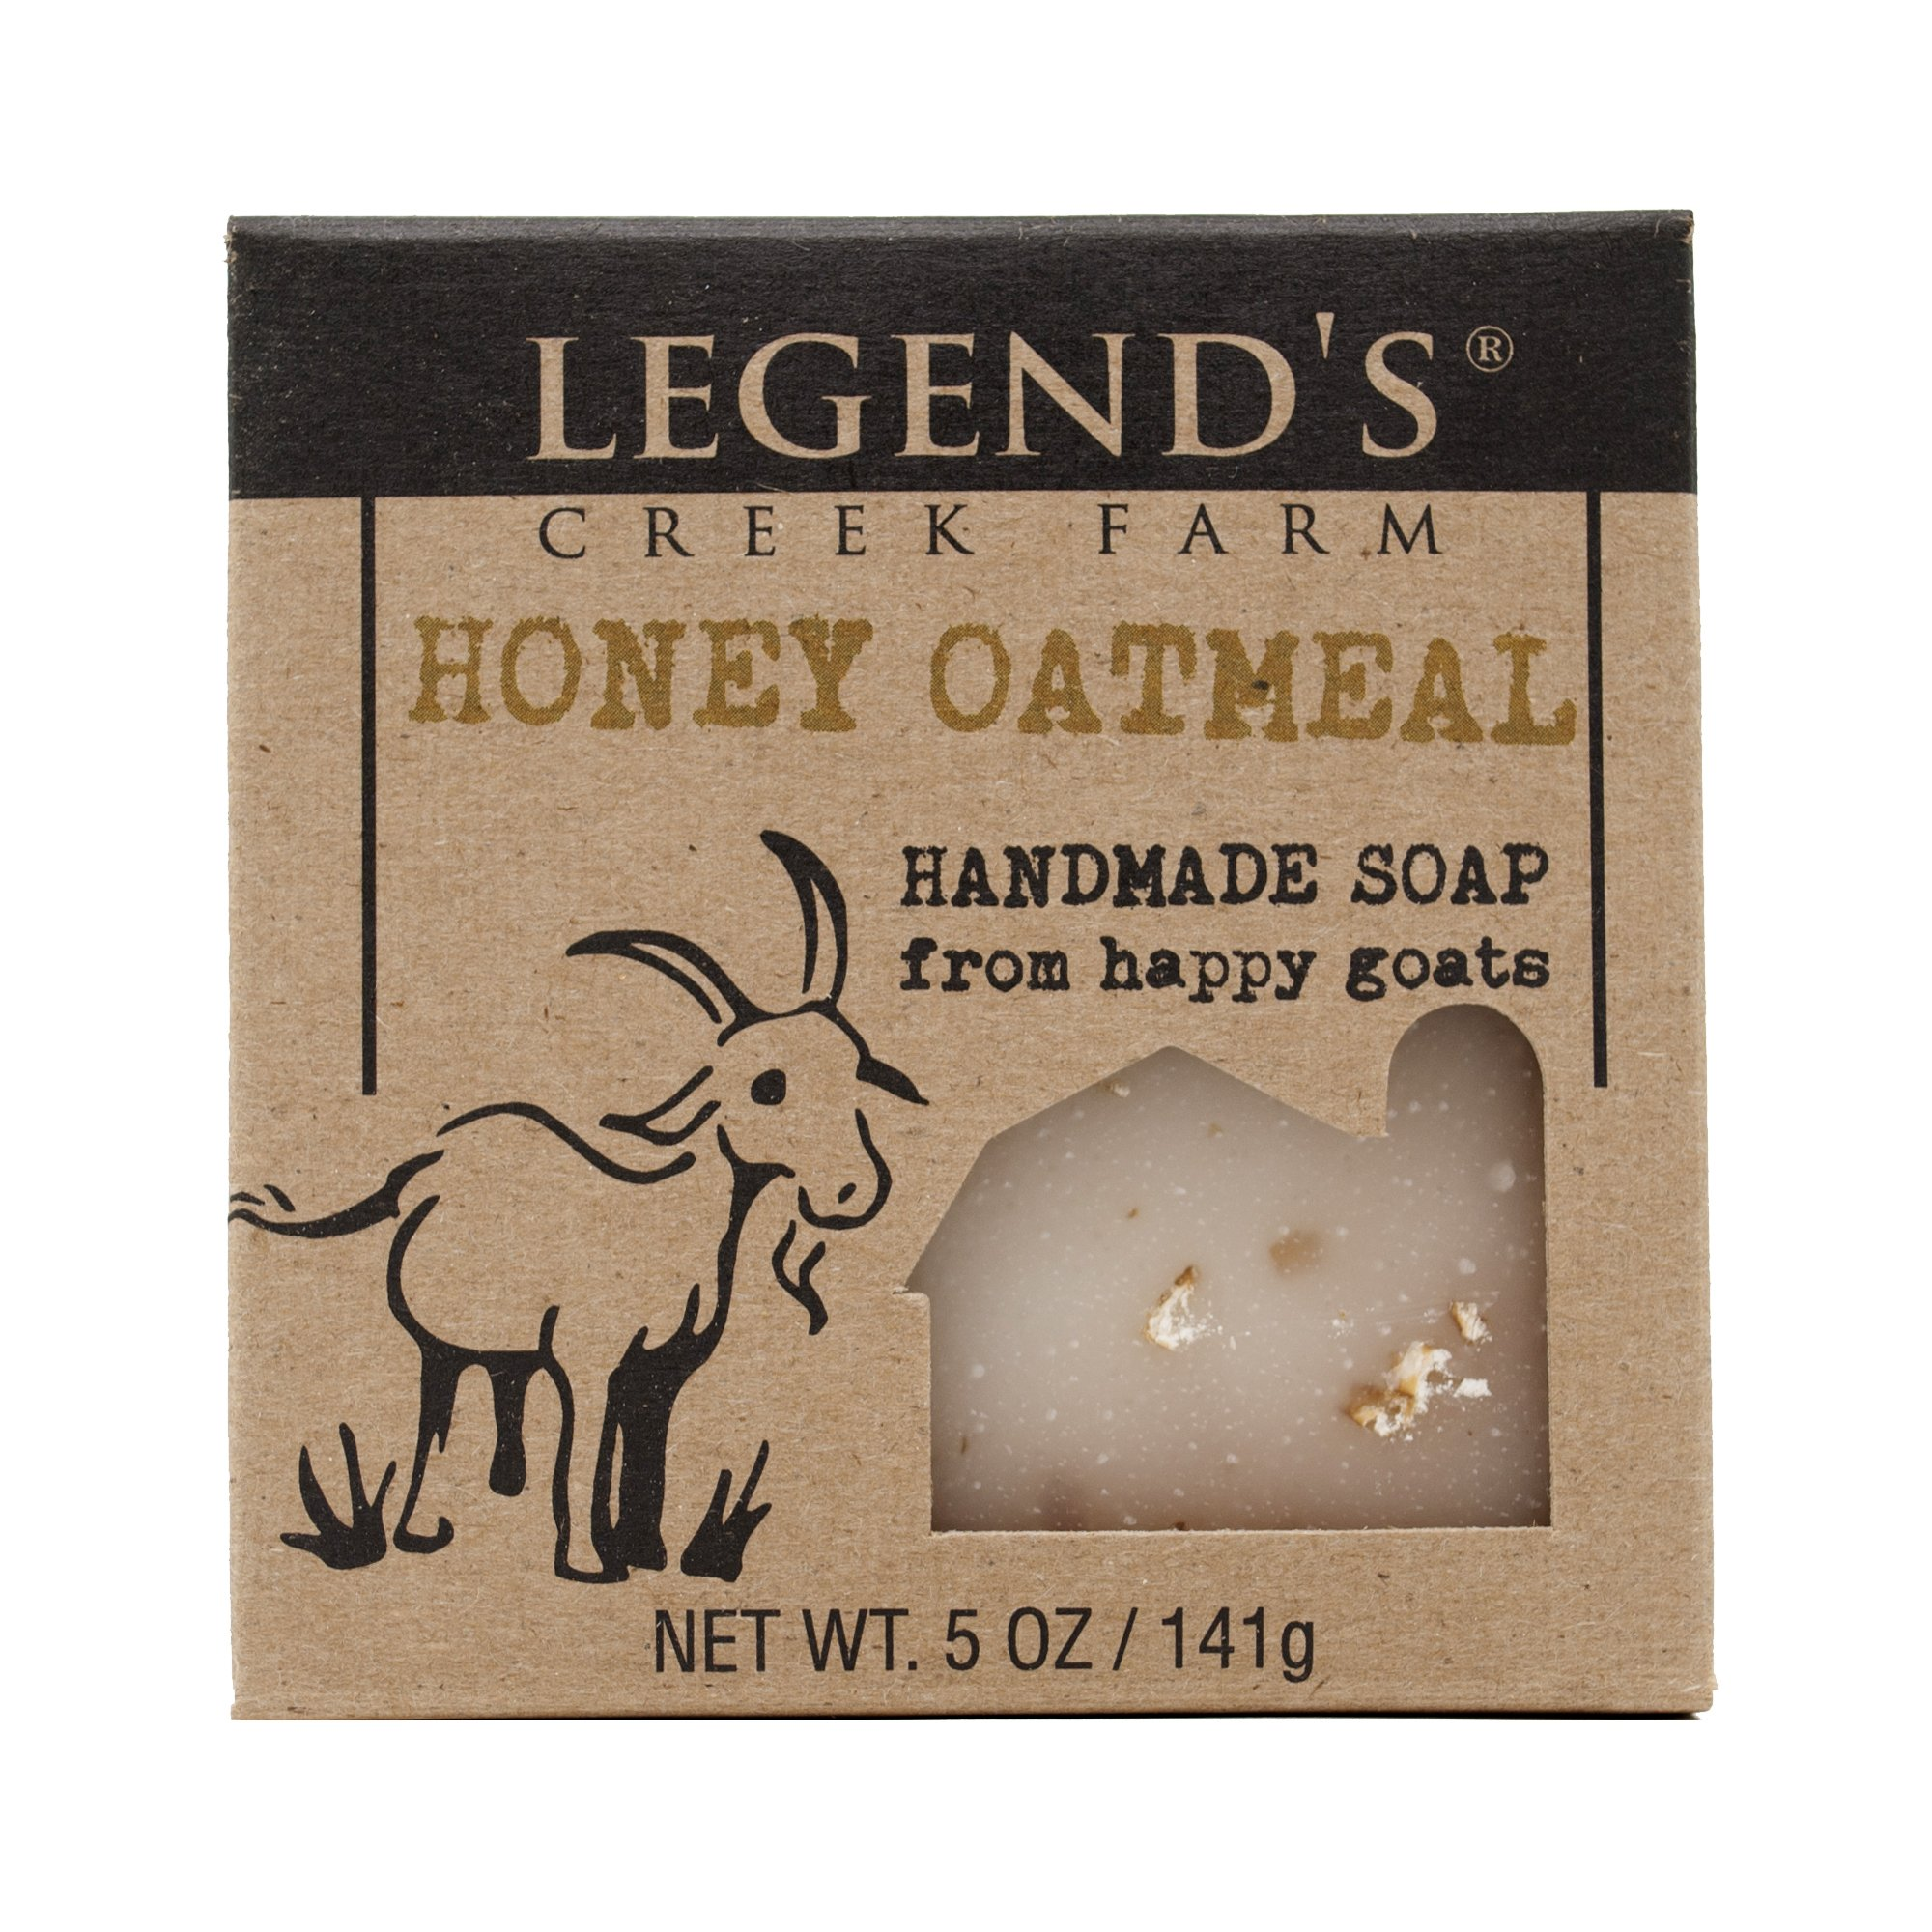 Honey Oatmeal Goat Milk Soap - 5 Oz Bar - Great For Sensitive Skin